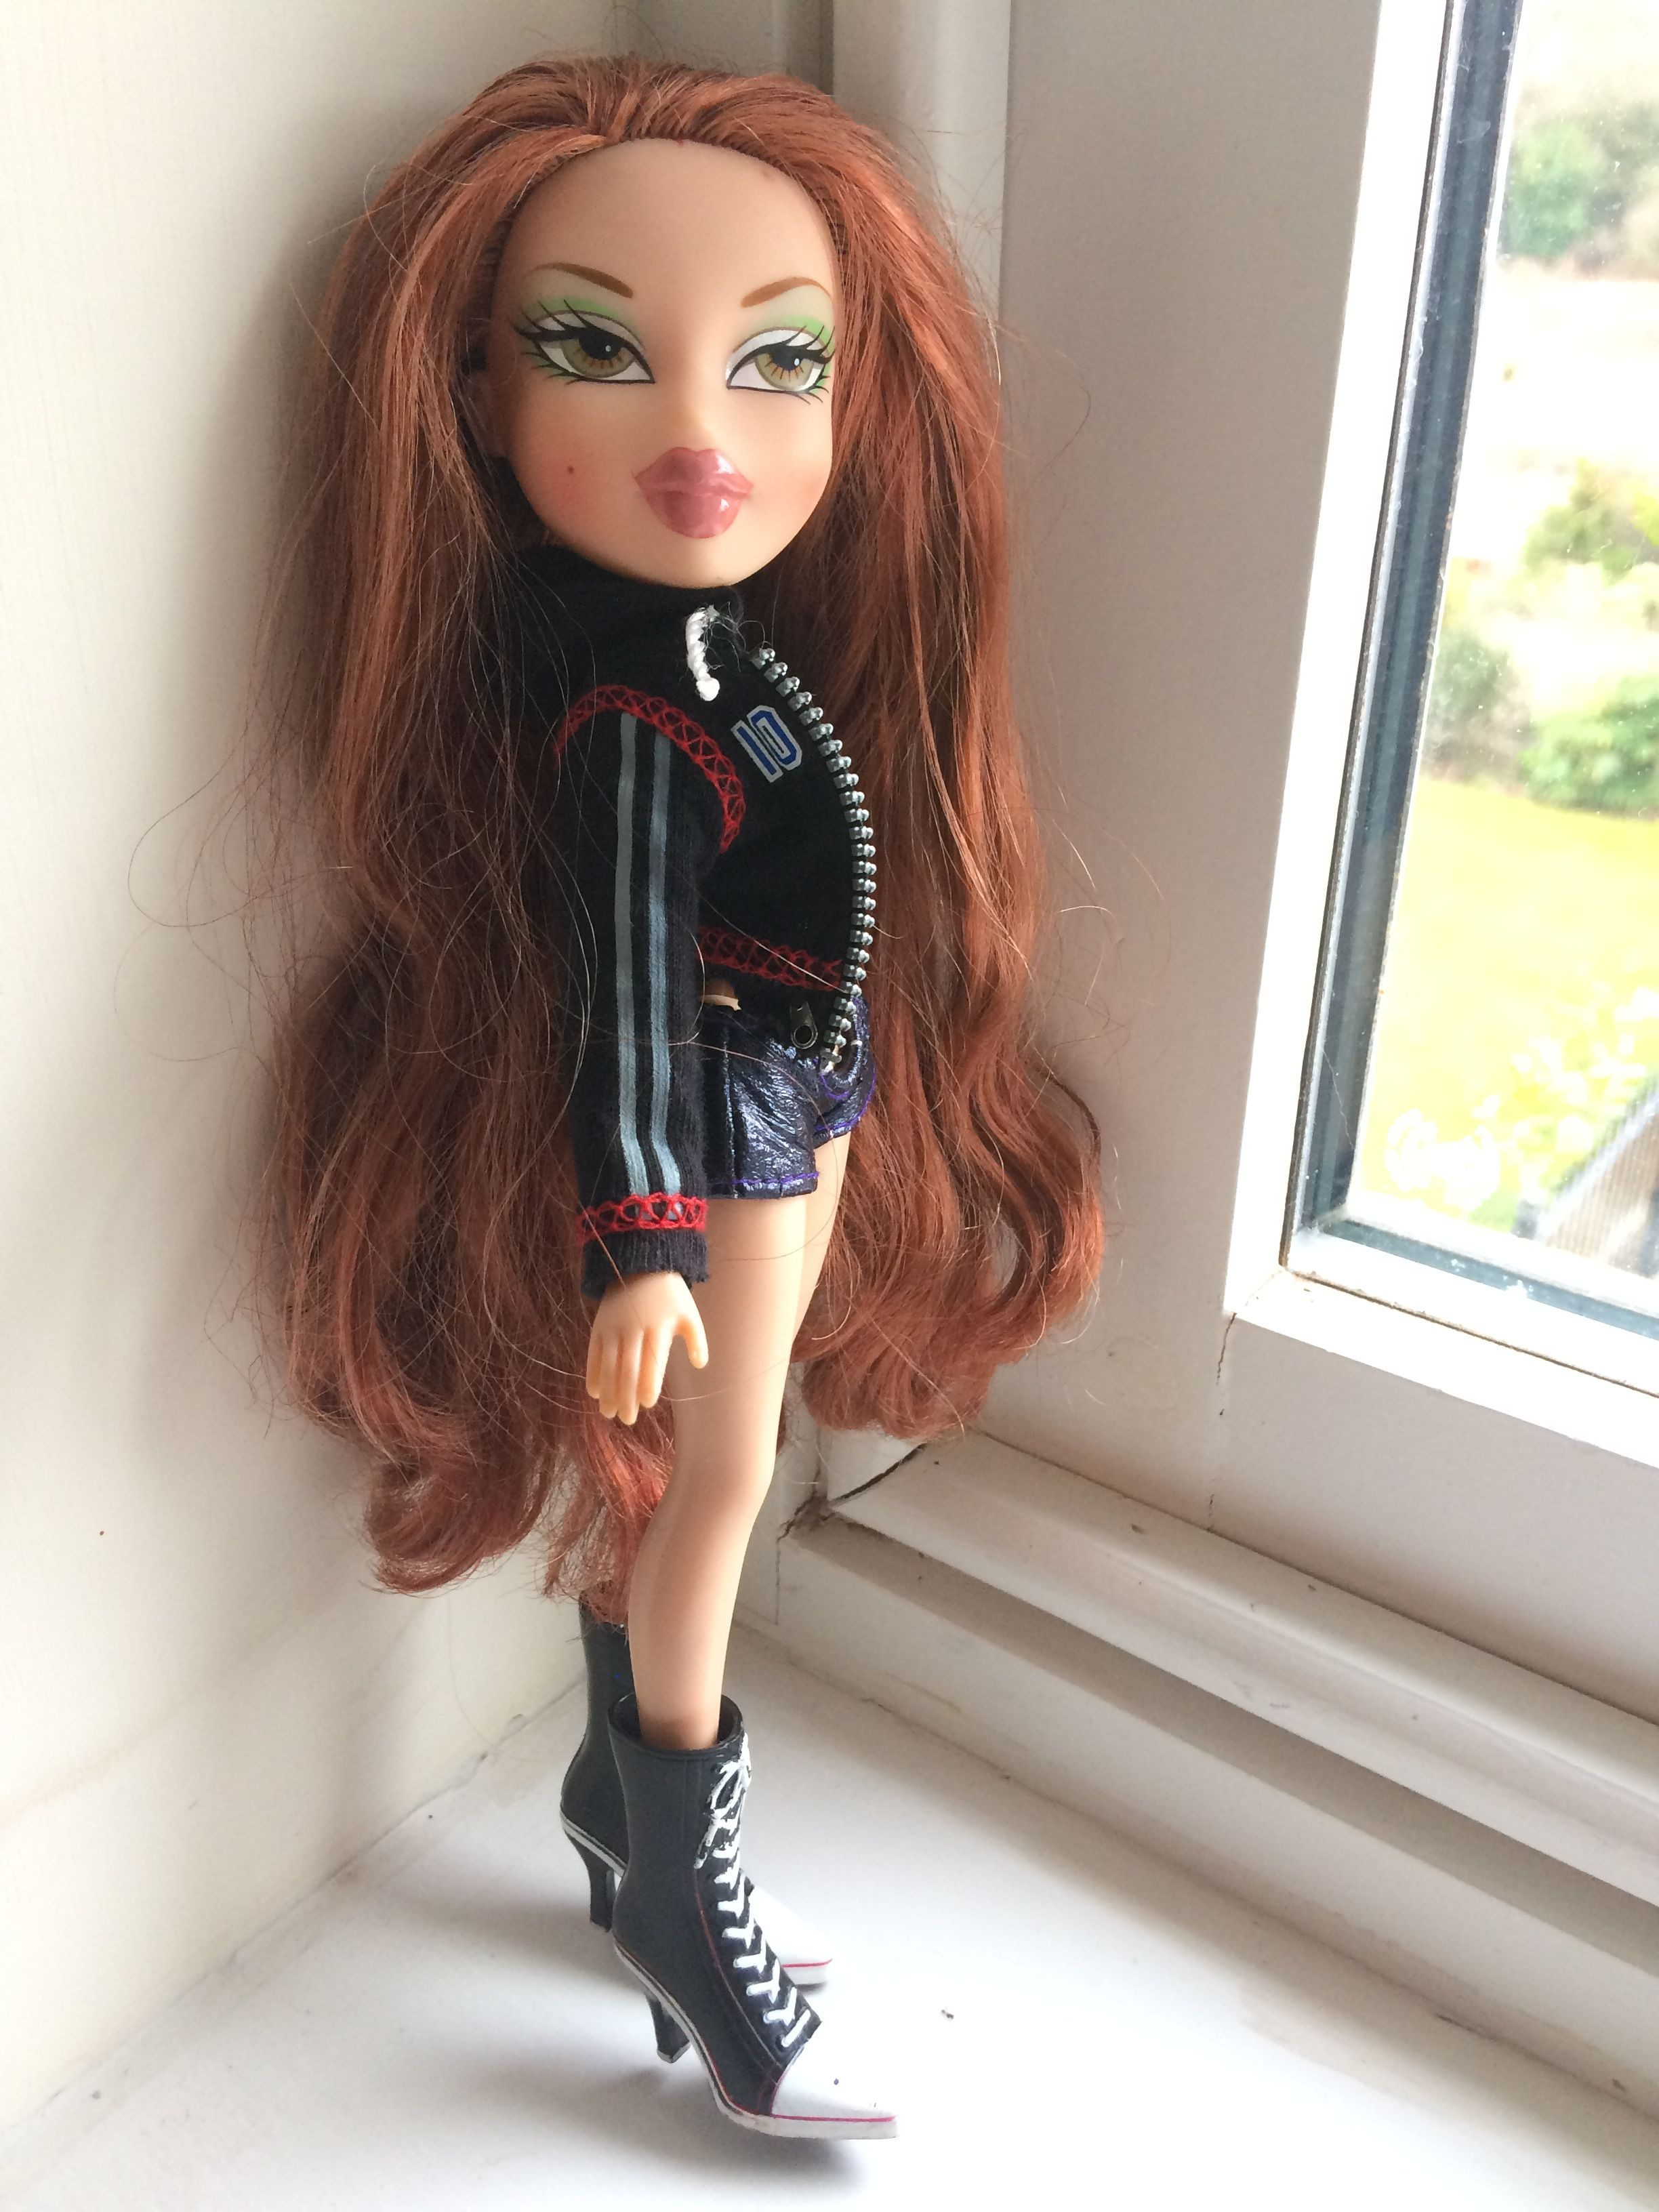 Bratz Head Games Rina Ginger Hair Her Hair Is Perfect I Love Her So Much Bratz Doll Outfits Ginger Hair Her Hair